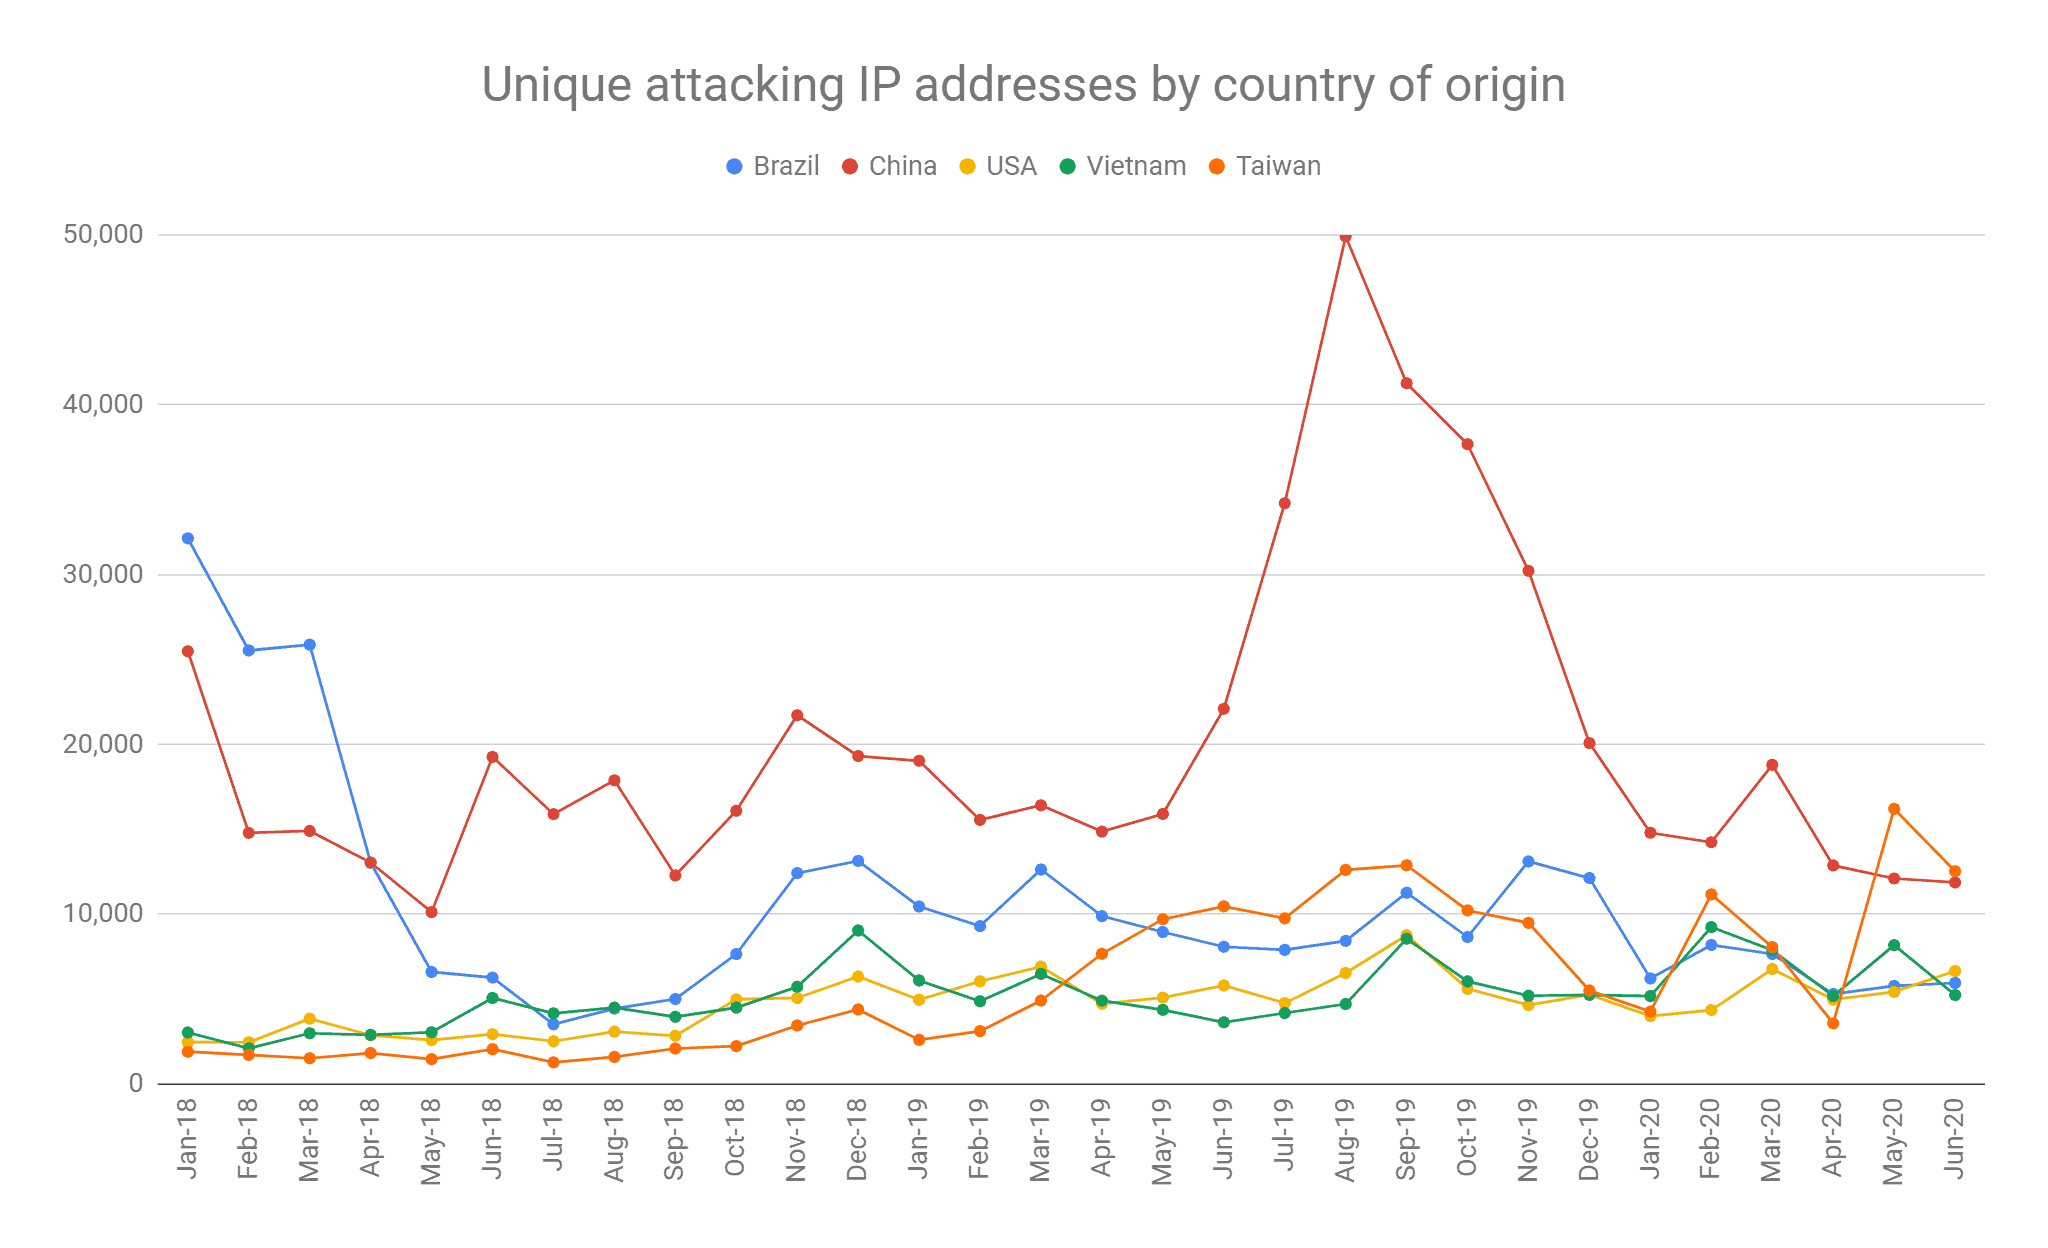 Unique attacking IP addresses by country of origin October 2018 - June 2020